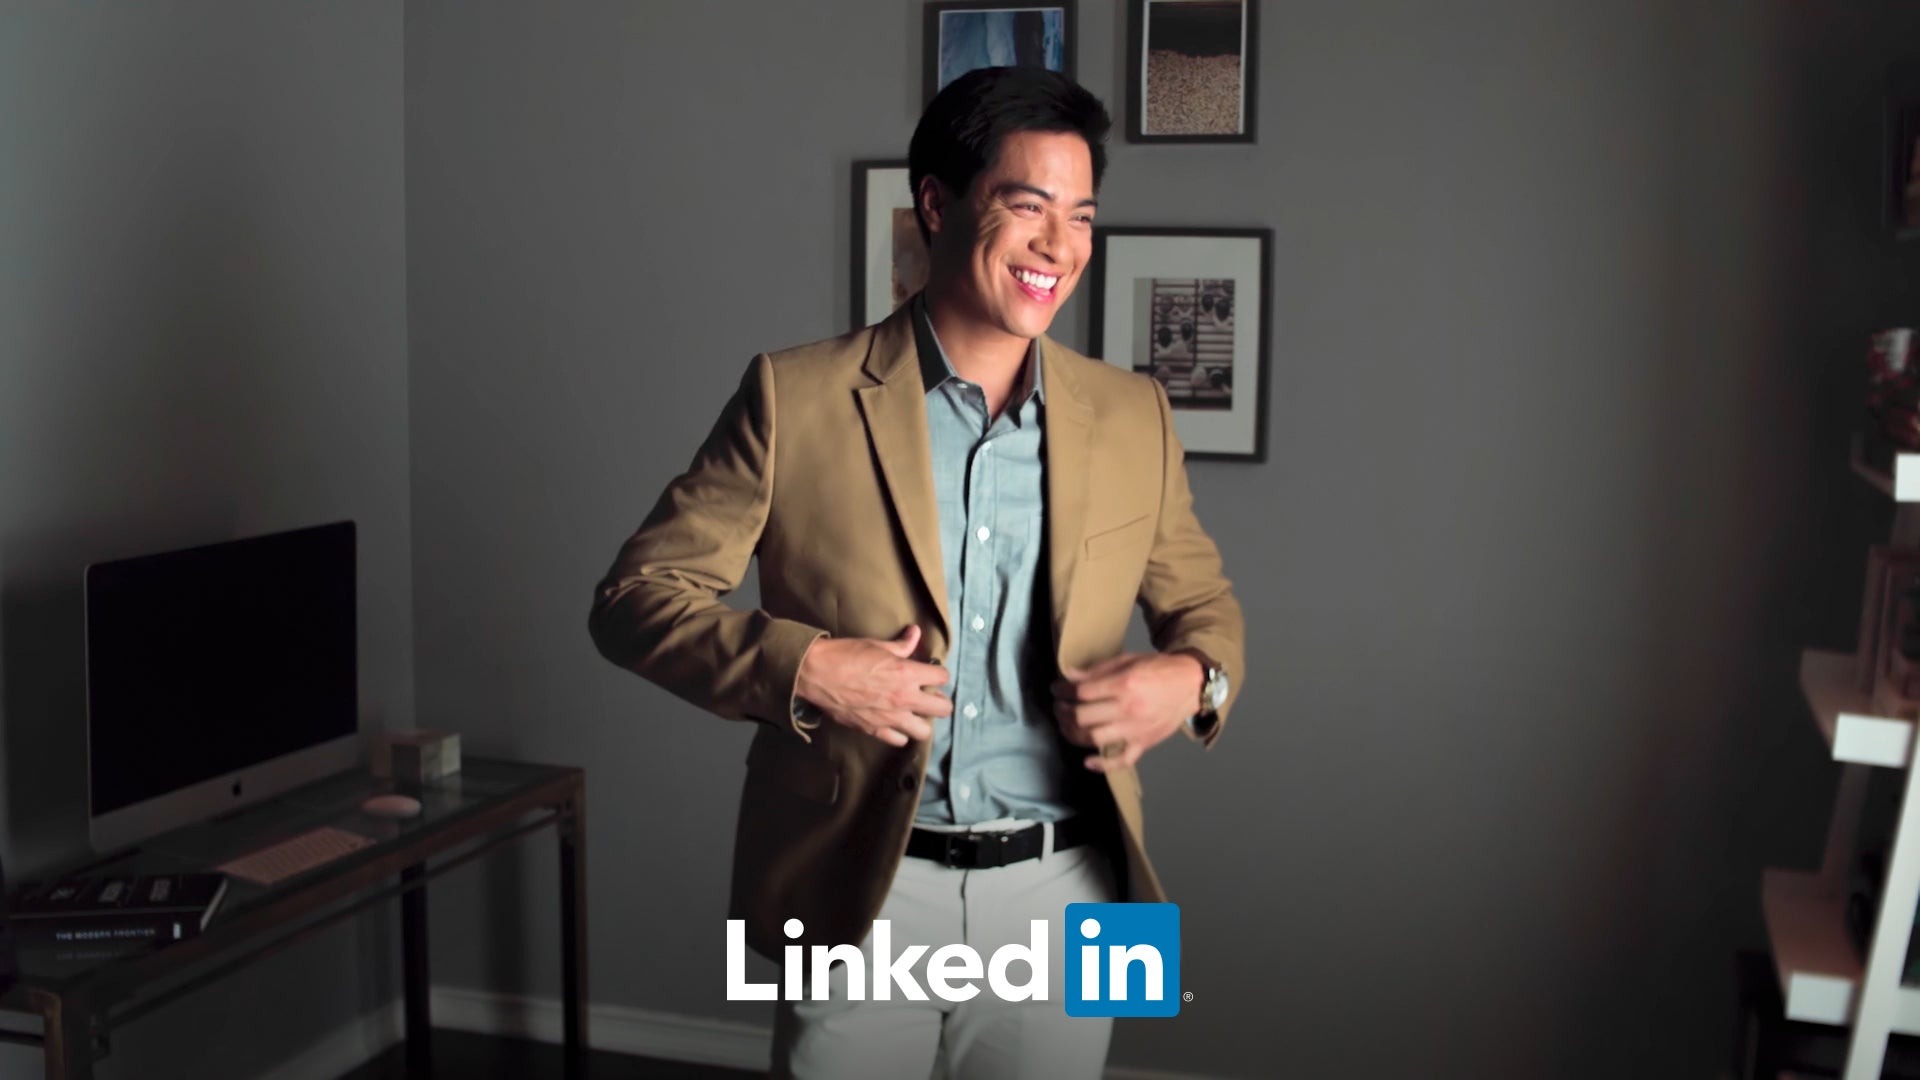 LinkedIn Profile Photo Tips